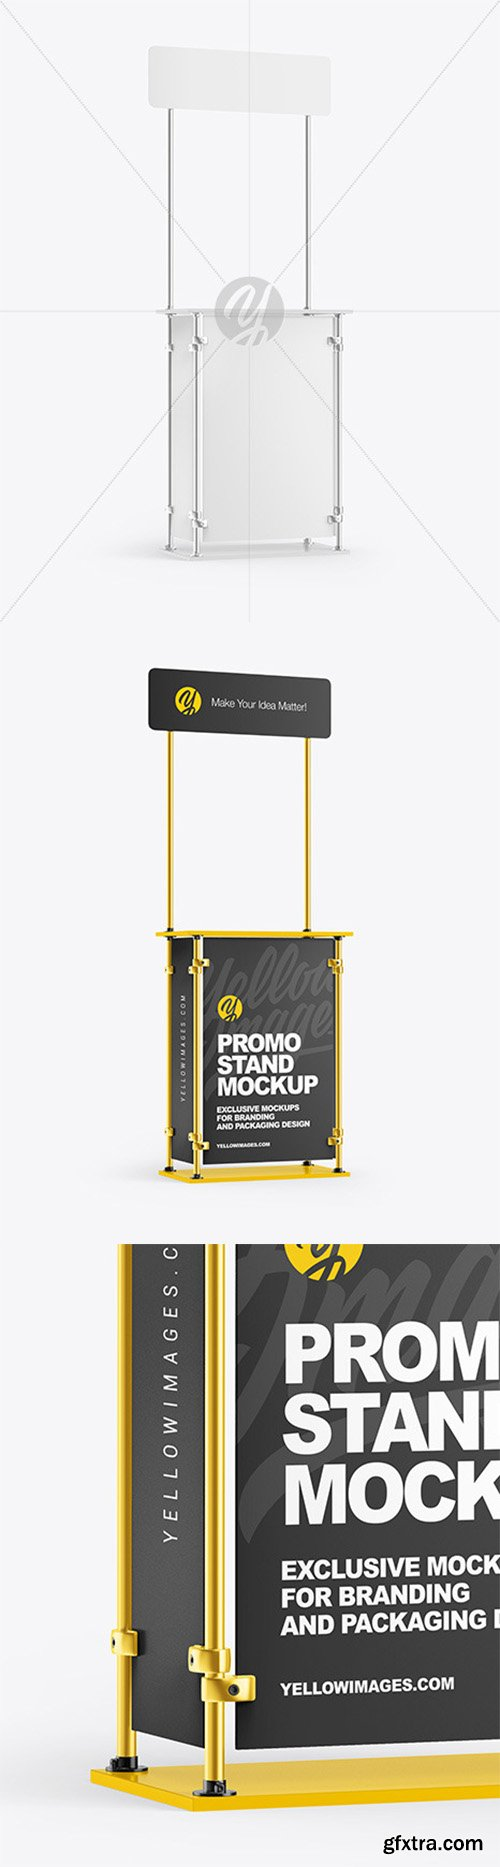 Download Download Company Logo Mockup Psd Free Download Object Mockups Yellowimages Mockups